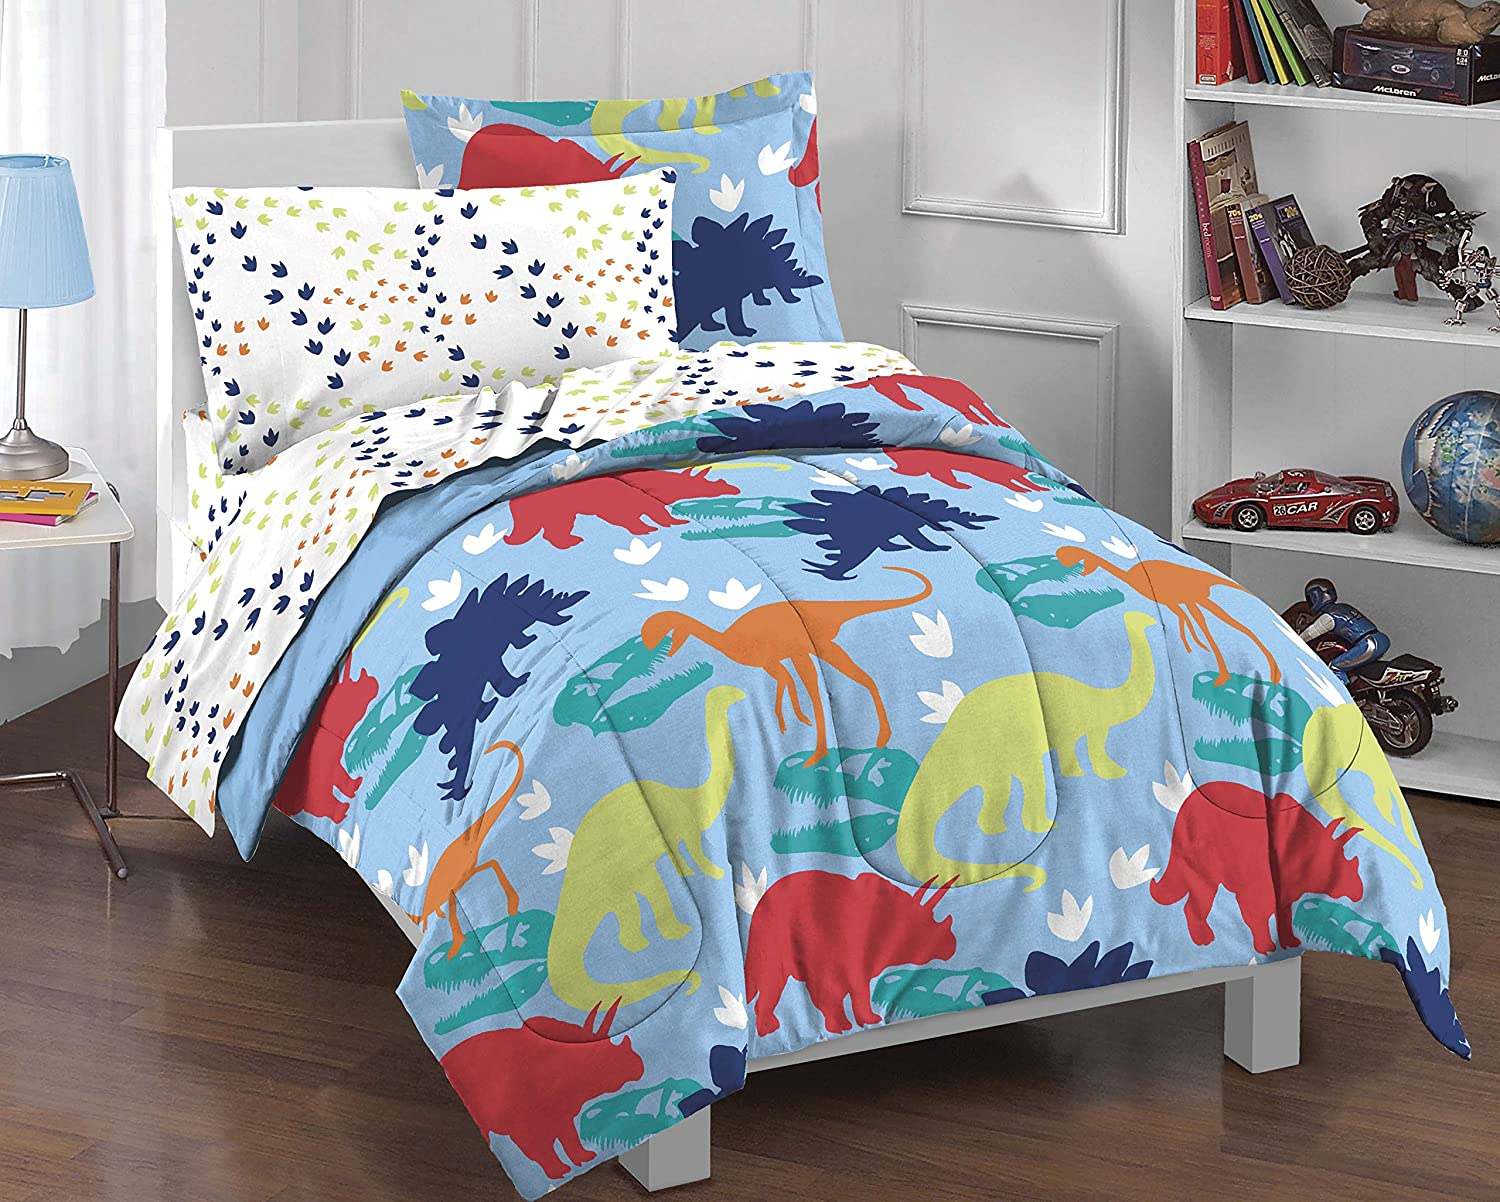 Dream Factory Dinosaur Prints Boys Comforter Set, Multi-Colored